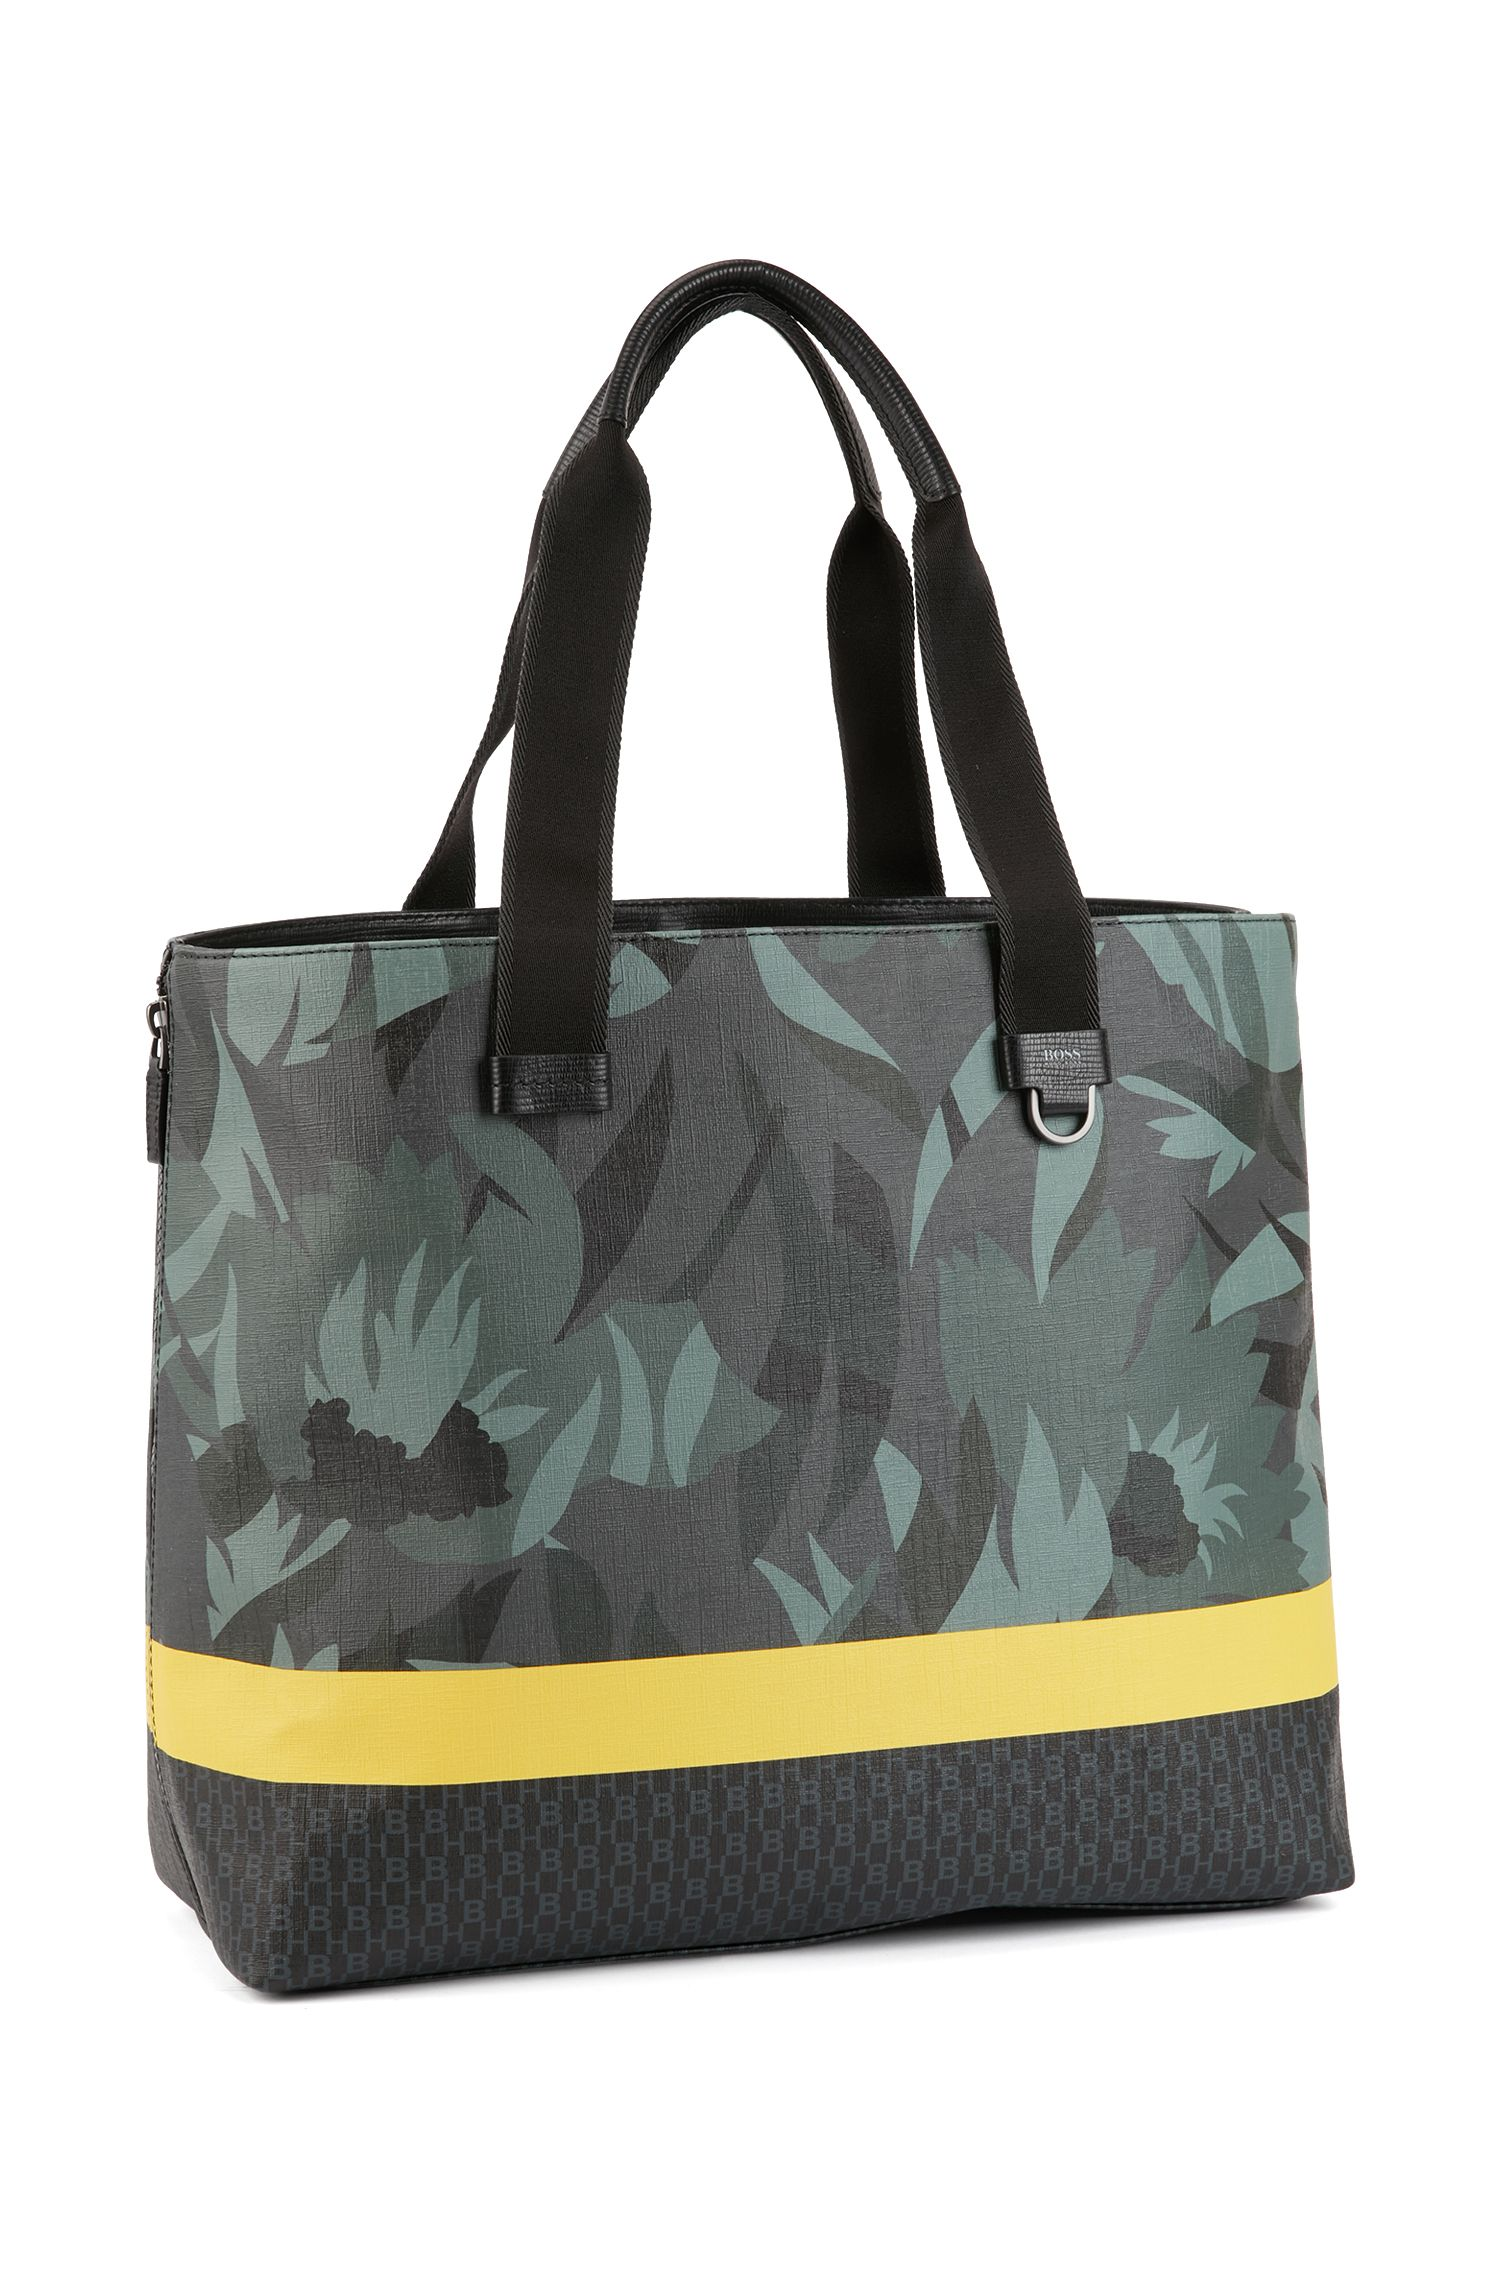 Tote bag in floral-printed Italian fabric with stripe, Patterned